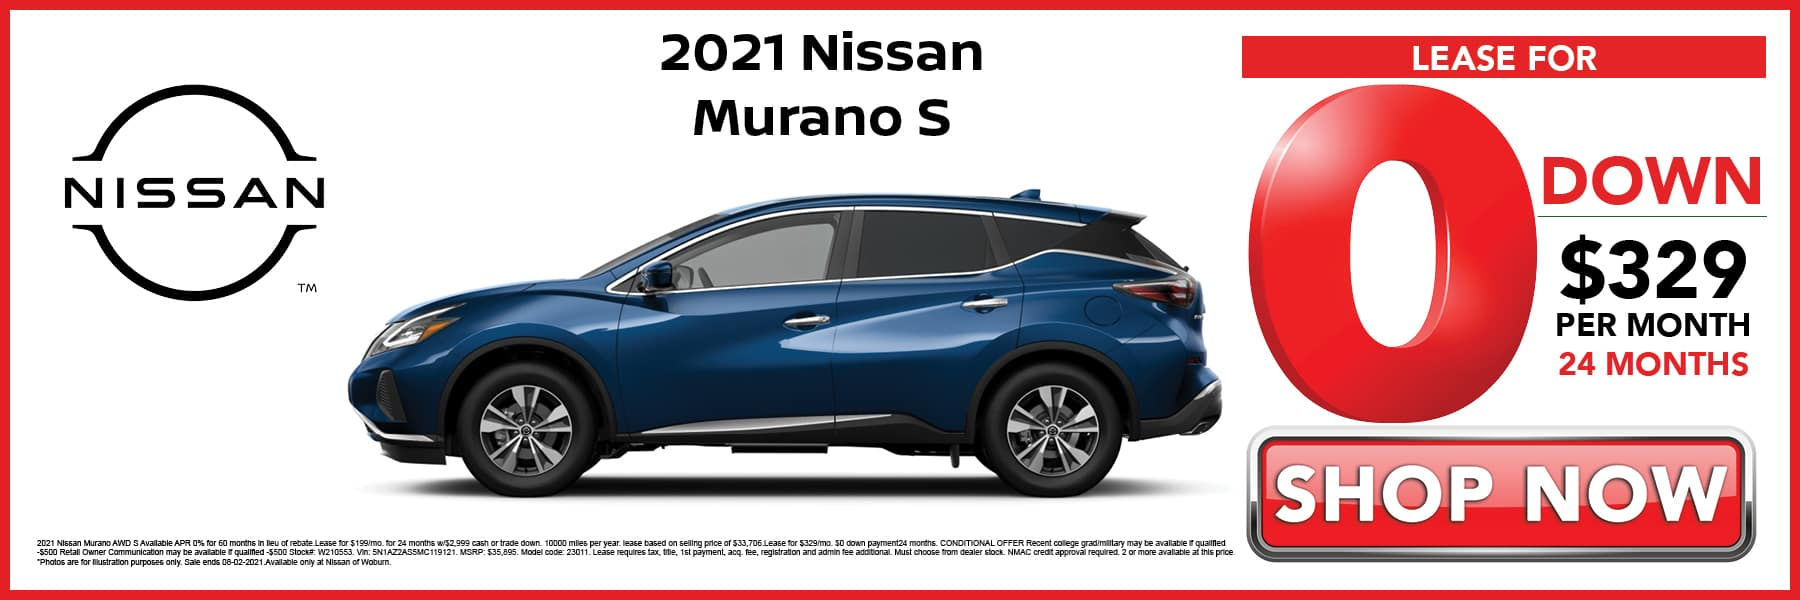 2021 Nissan Murano S Lease for 0 Down then $329 per Month for 24 Months